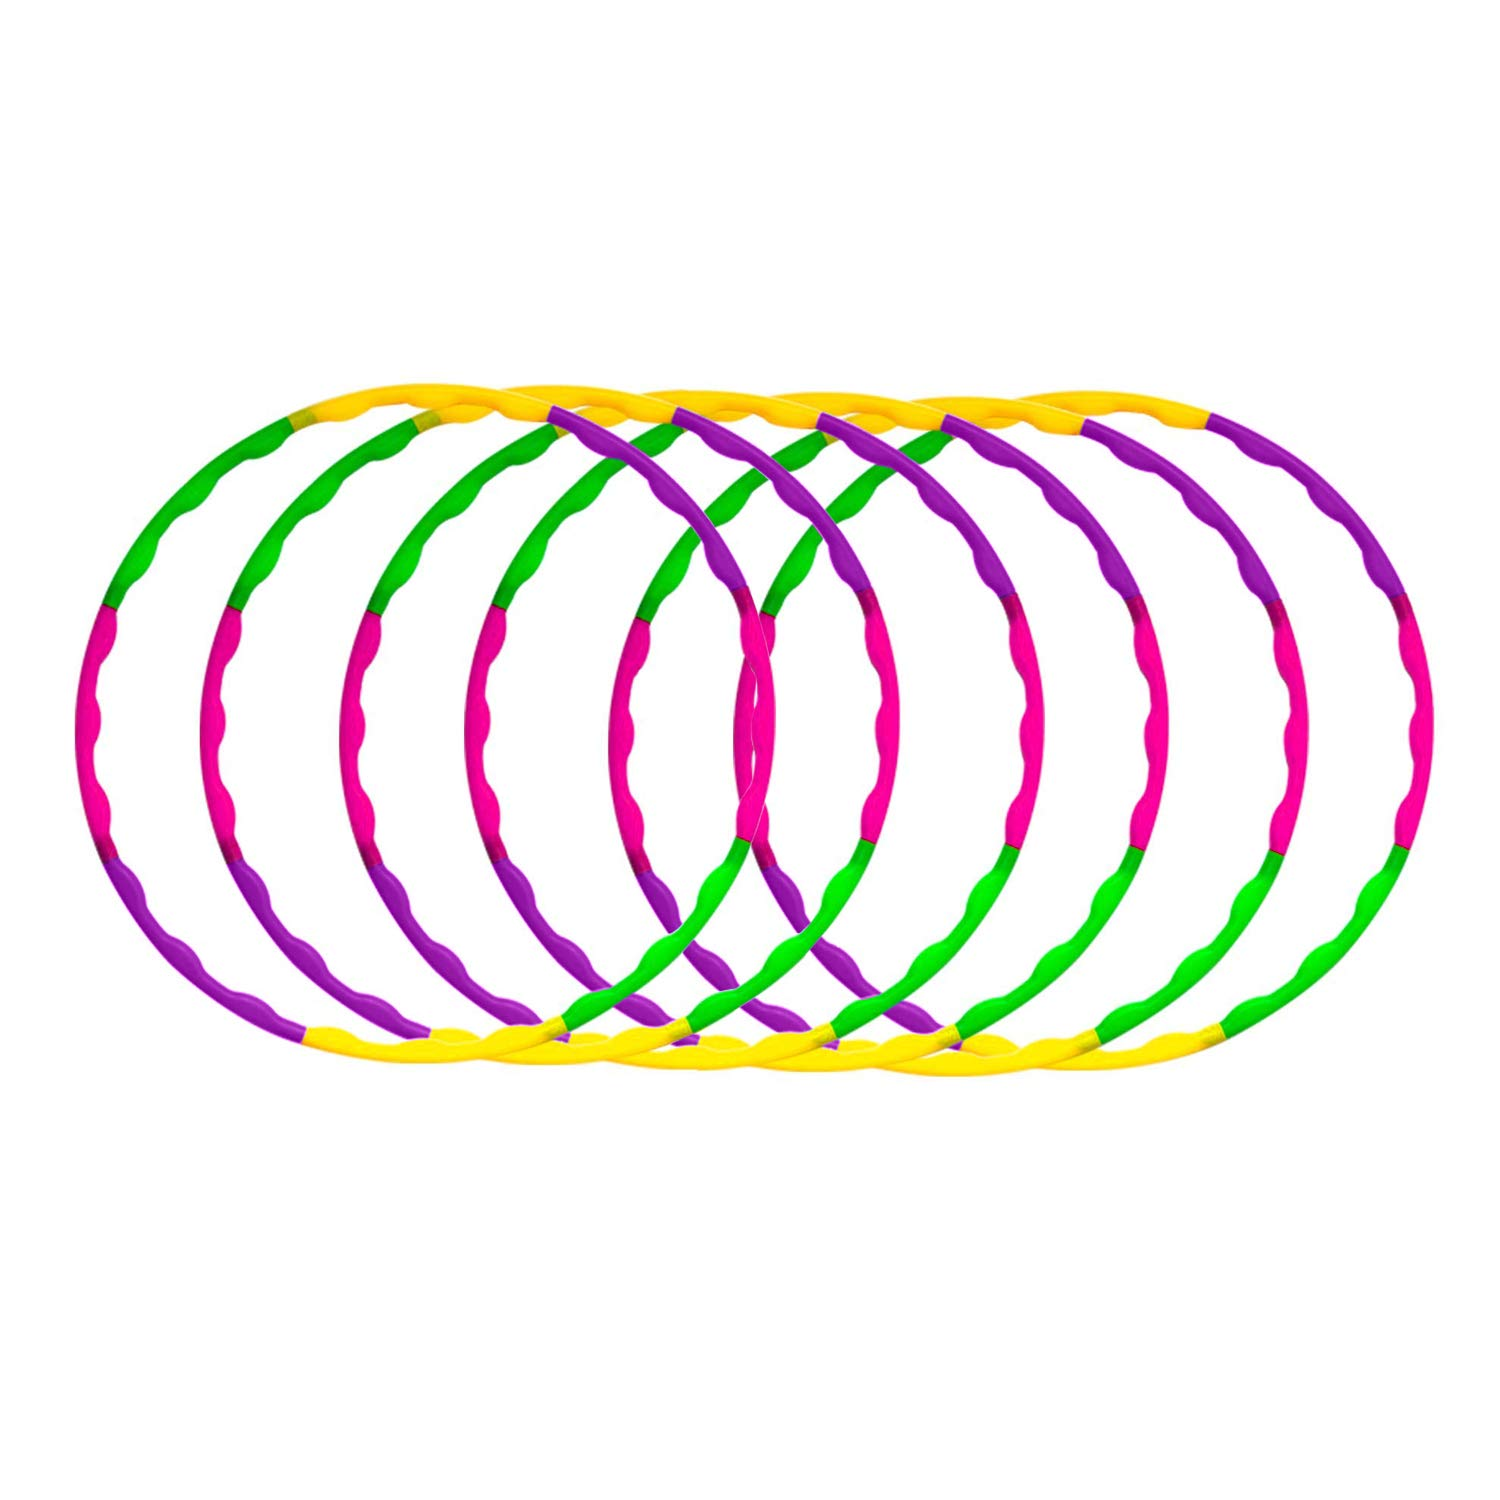 Enchanted Mango Snap Together Detachable Kids Hula Hoop for Playing, 32-Inch (Pack of 6) by Enchanted Mango (Image #1)